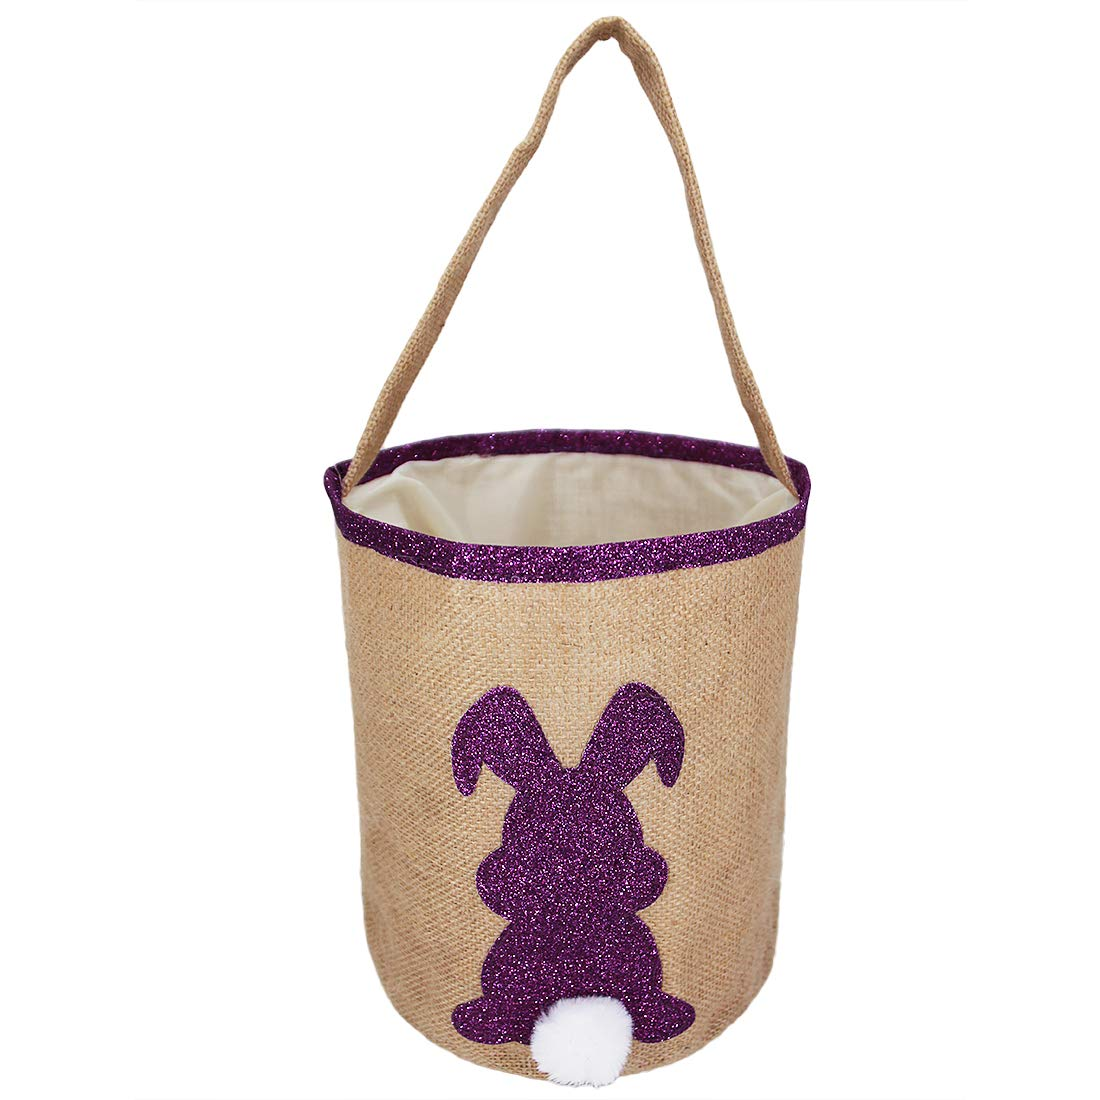 Easter Bunny Egg Basket for Kids Fluffy Rabbit Baskets with Cross-Stitch Line and Rabbit Headband Canvas Gift Bag Round Tote Jute Bags for Embroidery DIY Daily Use Purple FH021PR